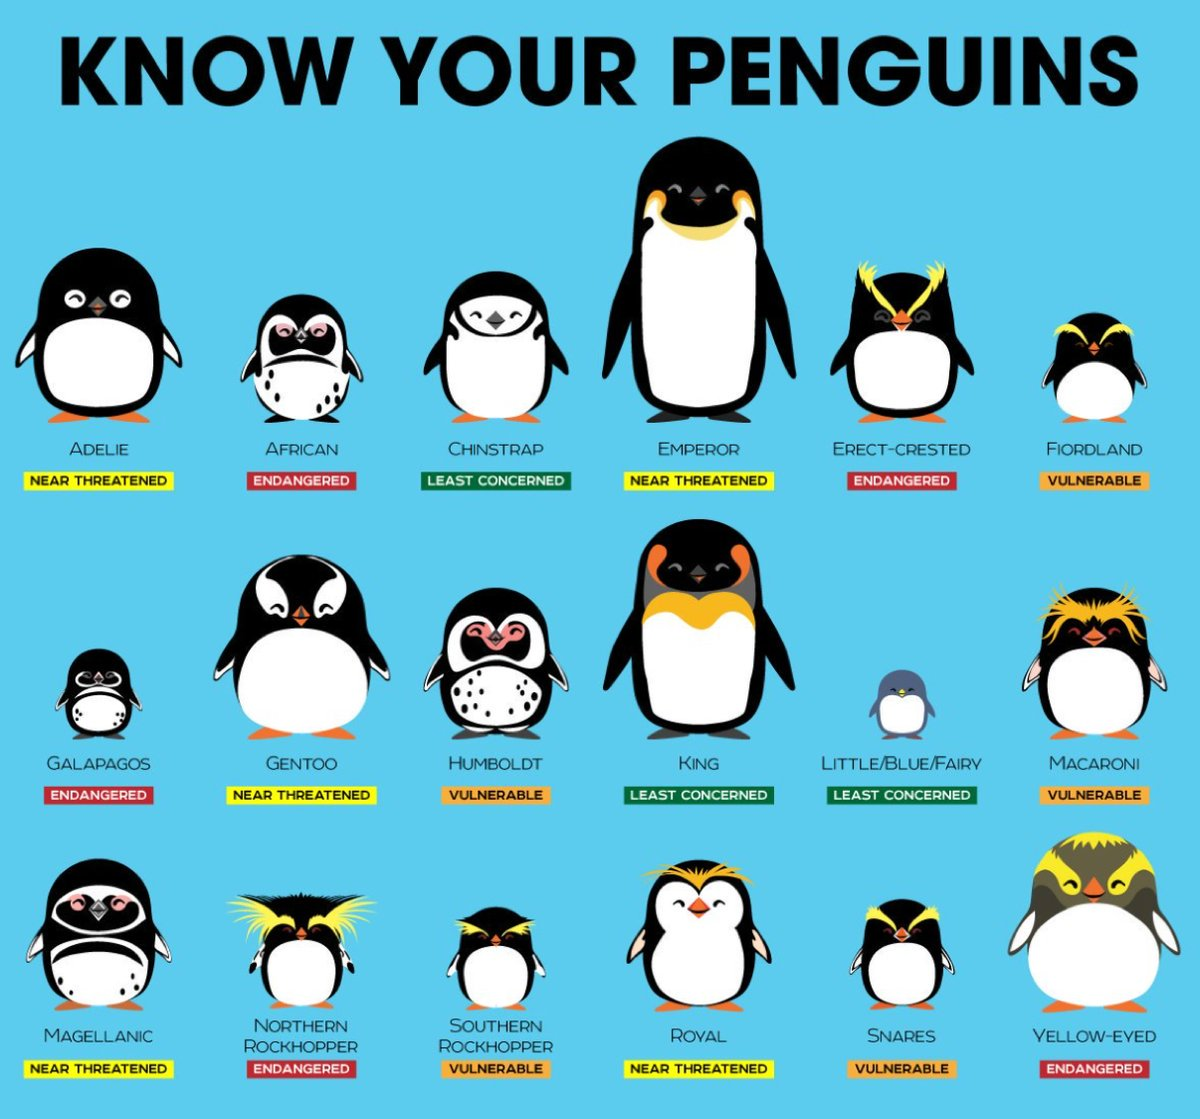 Happy World Penguin Day! Know your penguins! 18 different species, all found in the Southern Hemisphere, though the Galapagos lives on the Equator. The Emperor is the tallest at more than 1m. Many are threatened or endangered #WorldPenguinDay #penguins pic @PepomintNarwhal